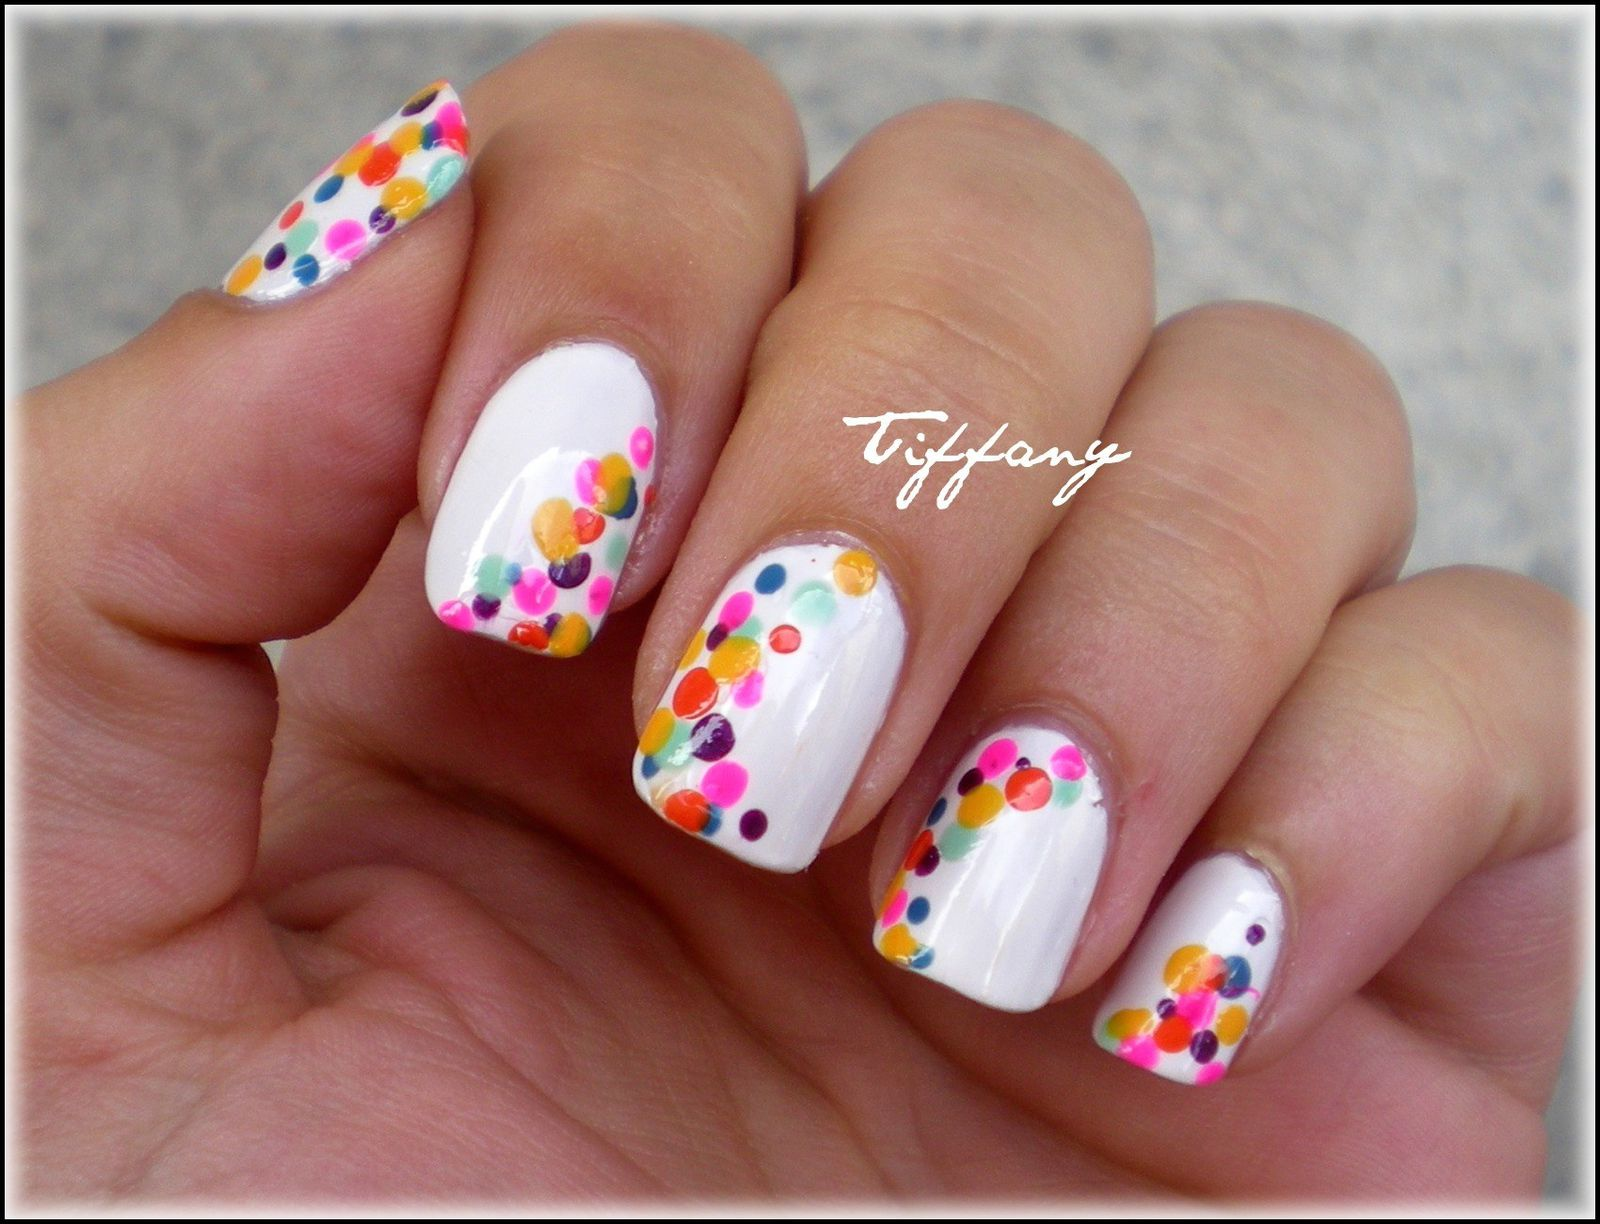 ongles 28.08.11 (2)